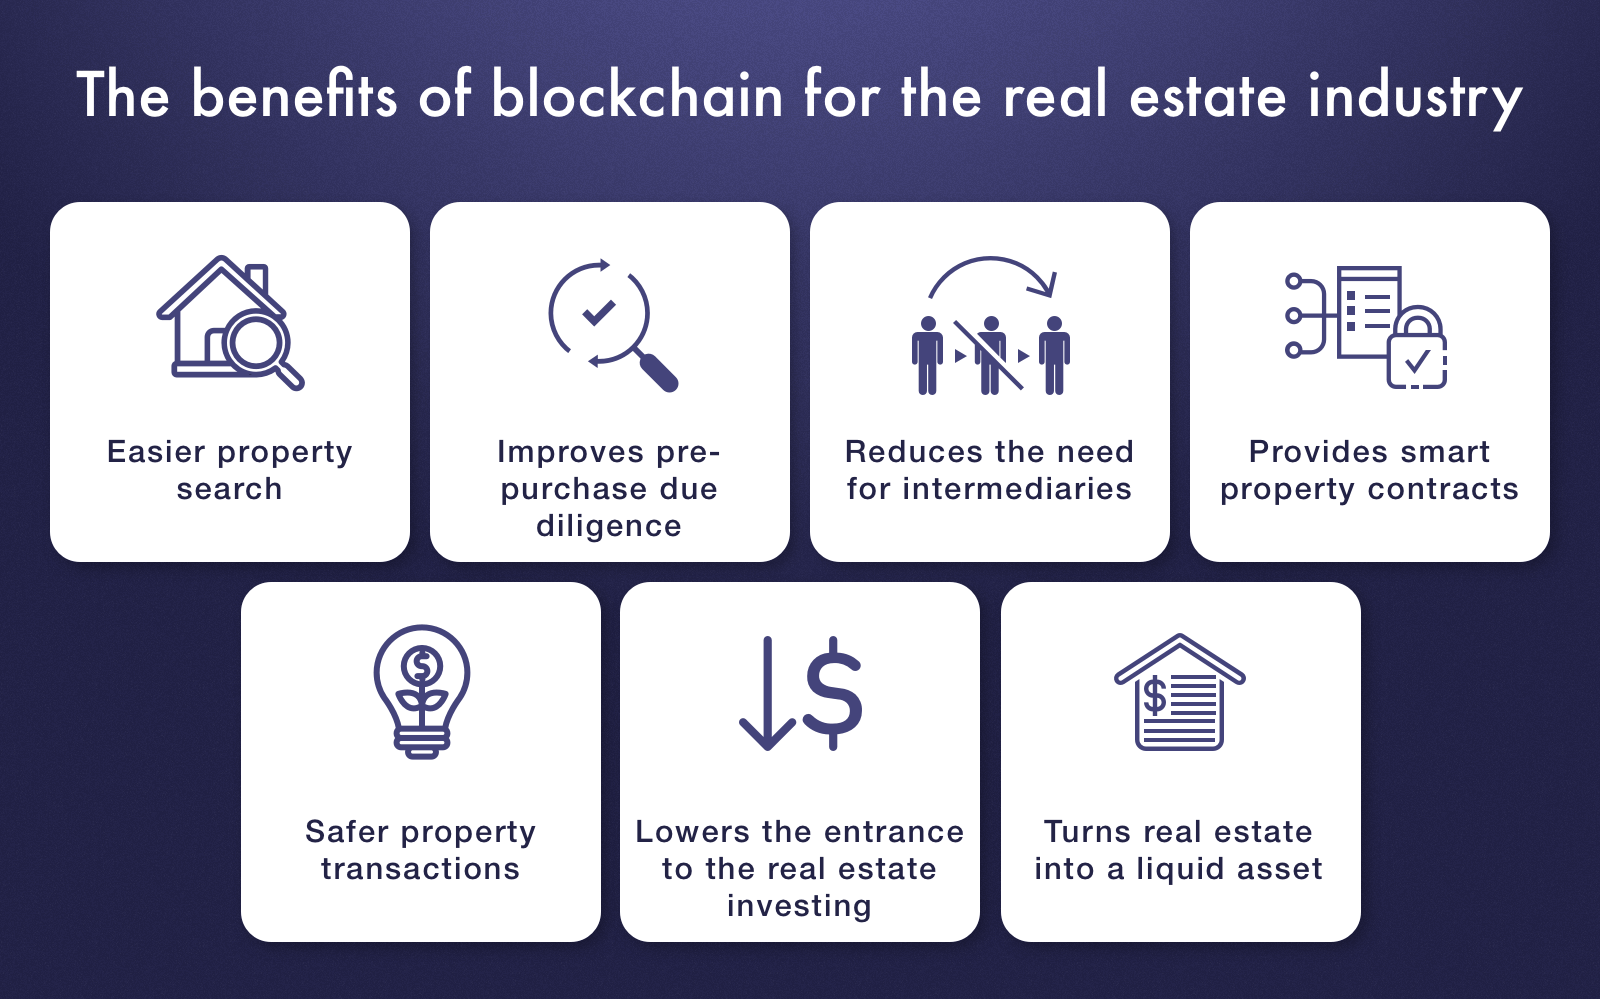 Benefits of blockchain for real estate field